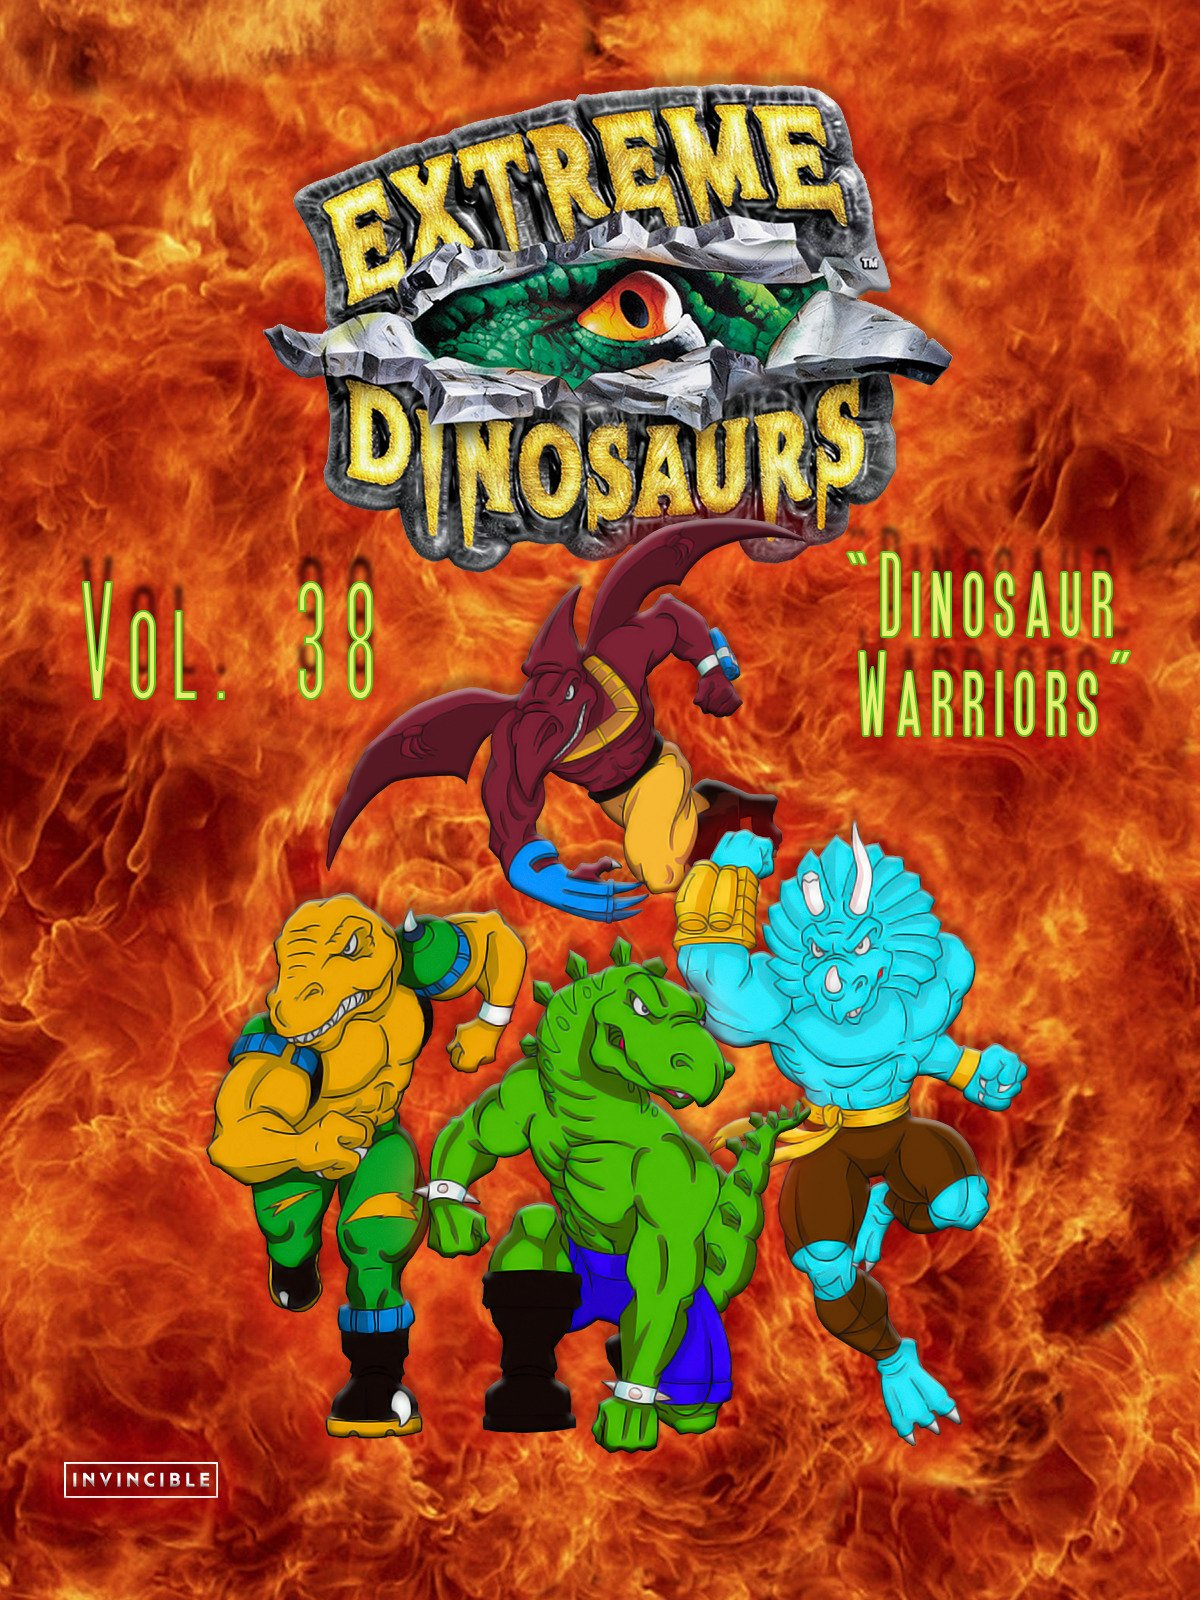 Extreme Dinosaurs Vol. 38Dinosaur Warriors